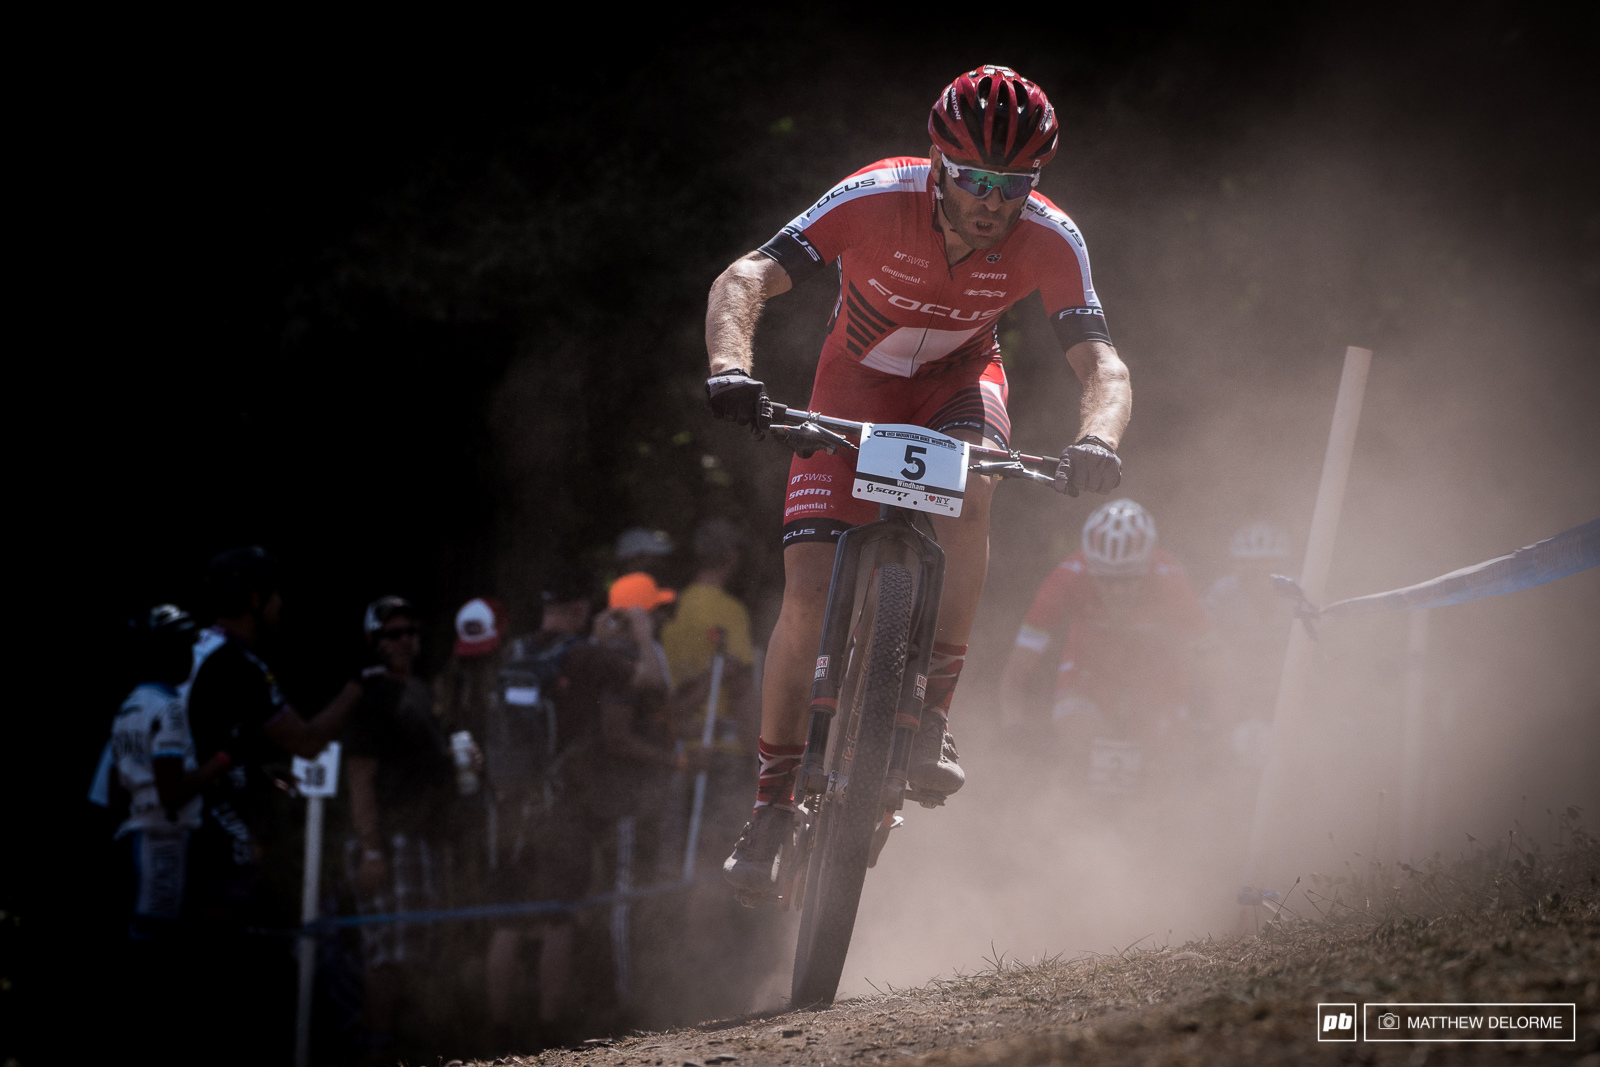 Florian Vogel finding his way though the dust cloud.